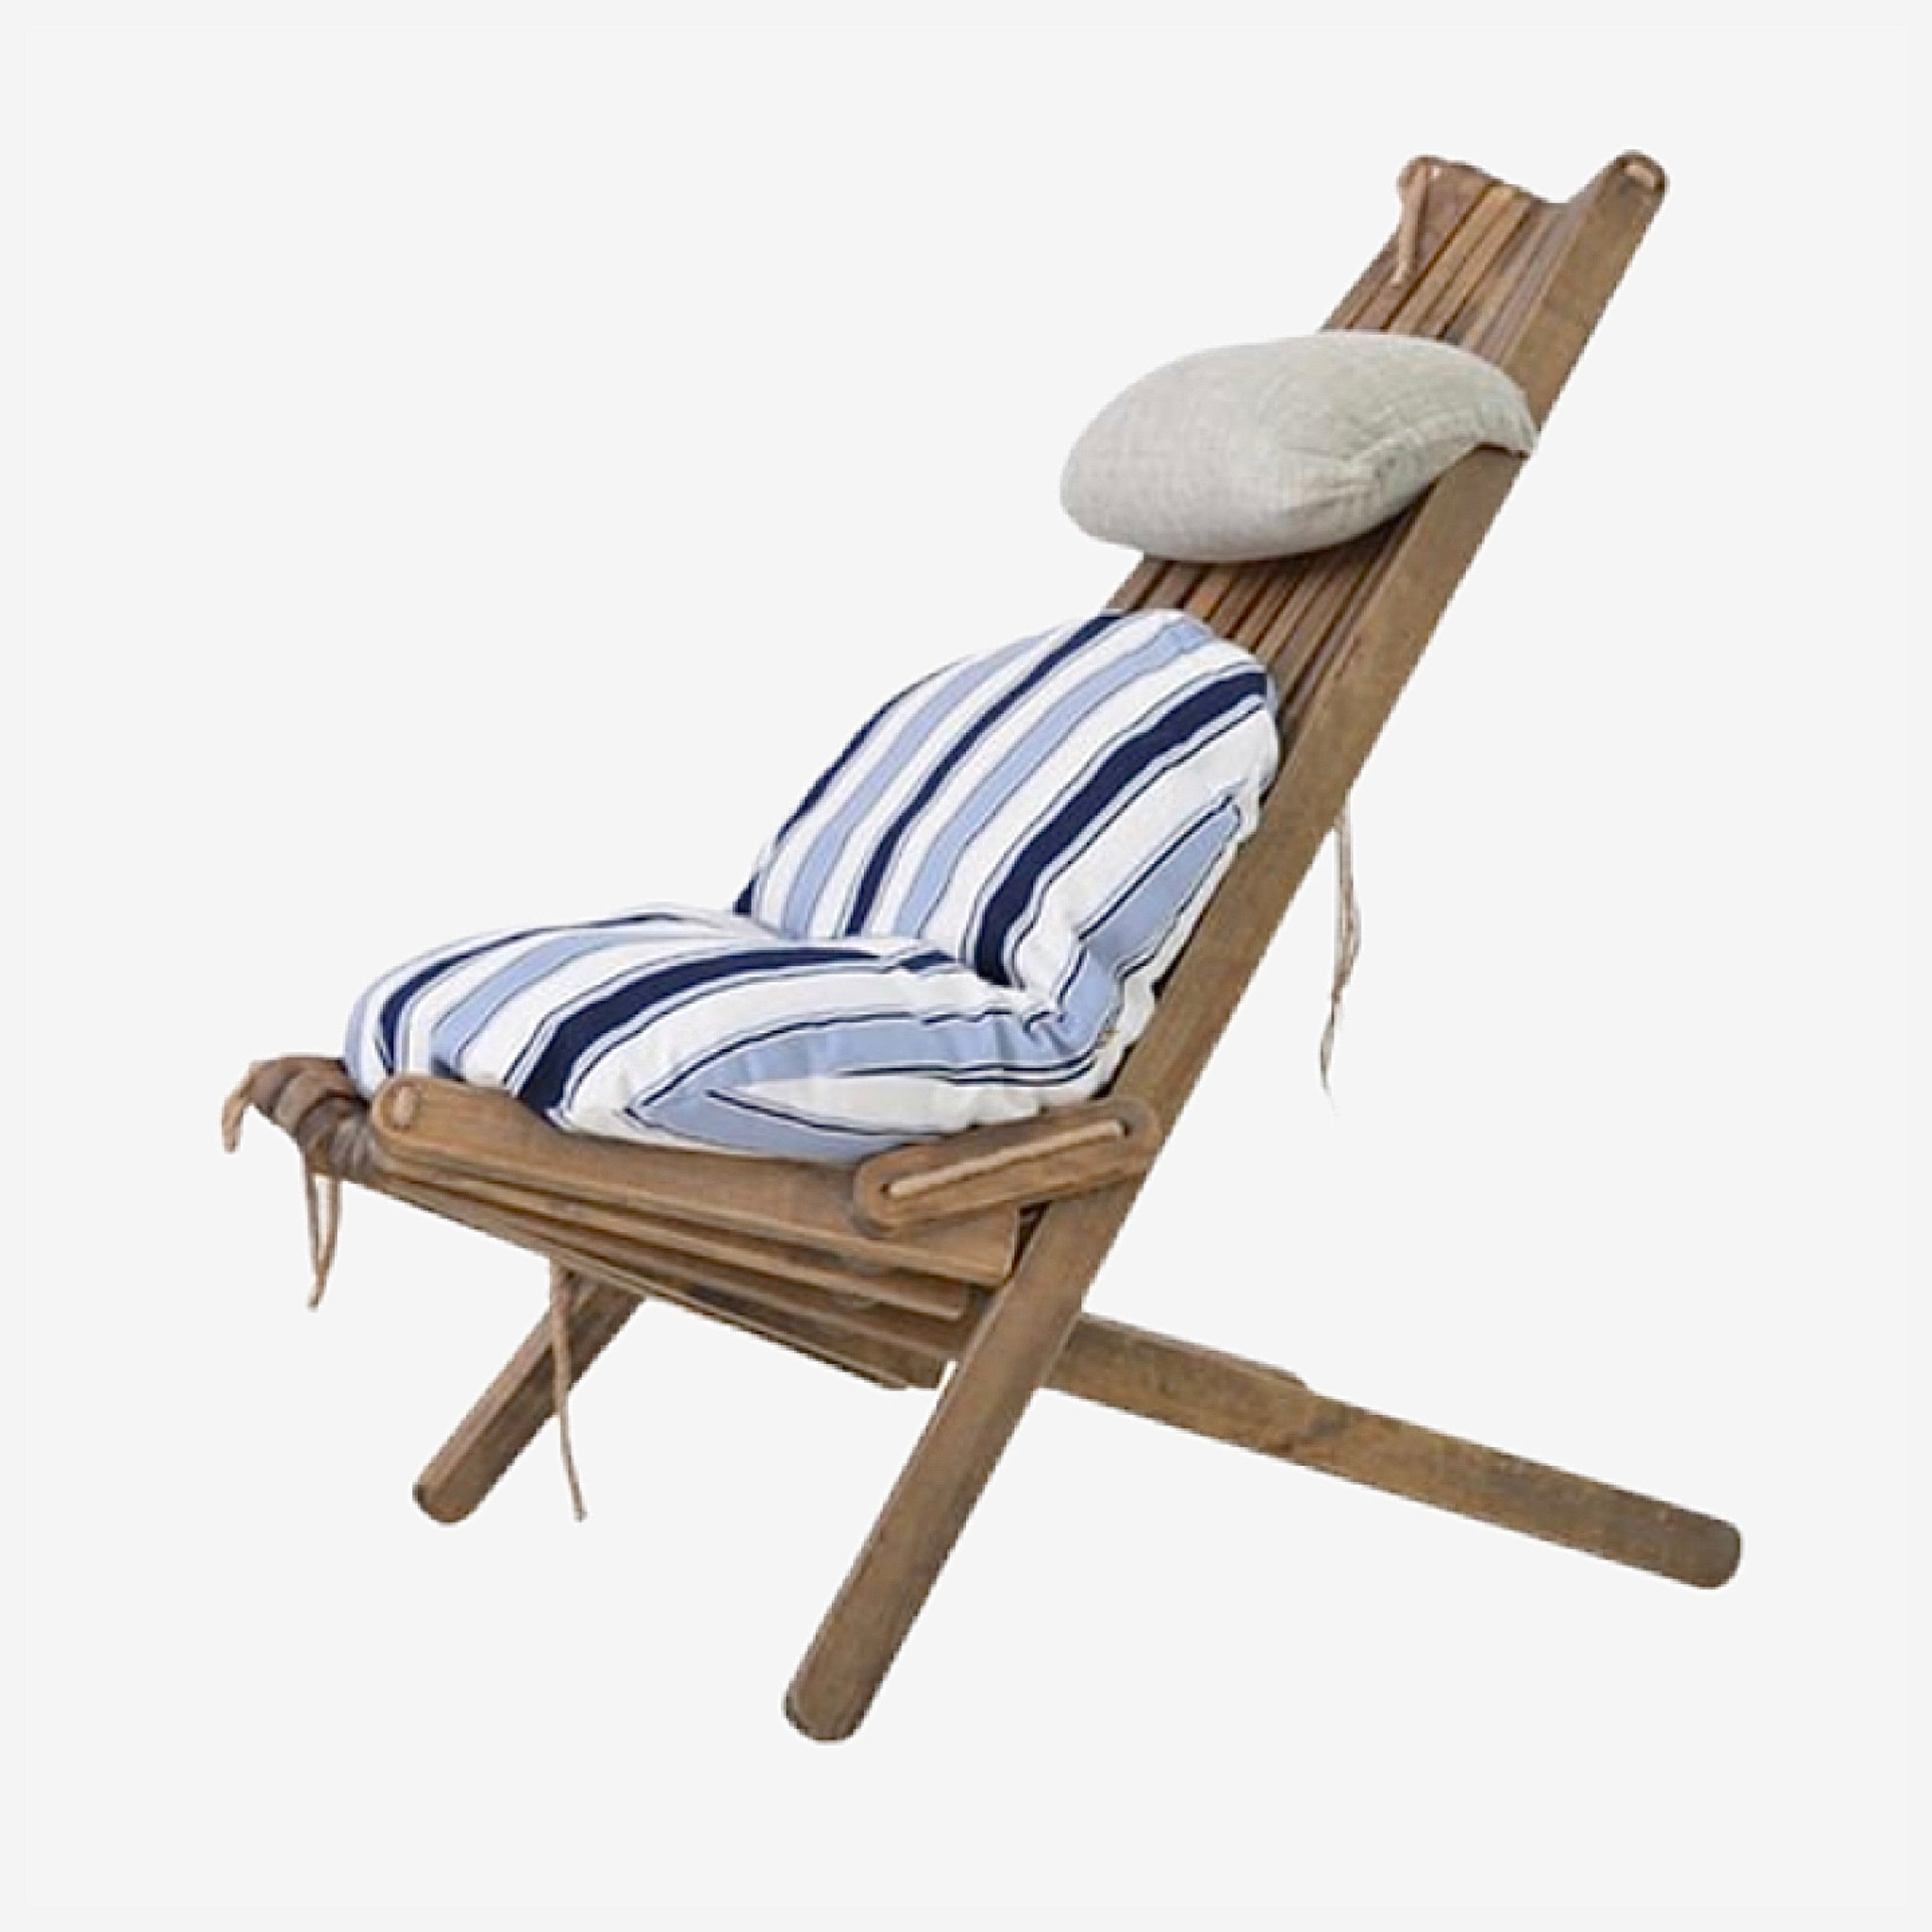 Wooden Lounge Chair with Pillow and Seat Cushion Foldable Outdoor Wood Folding Patio Balcony Outdoors Furniture Trending Style